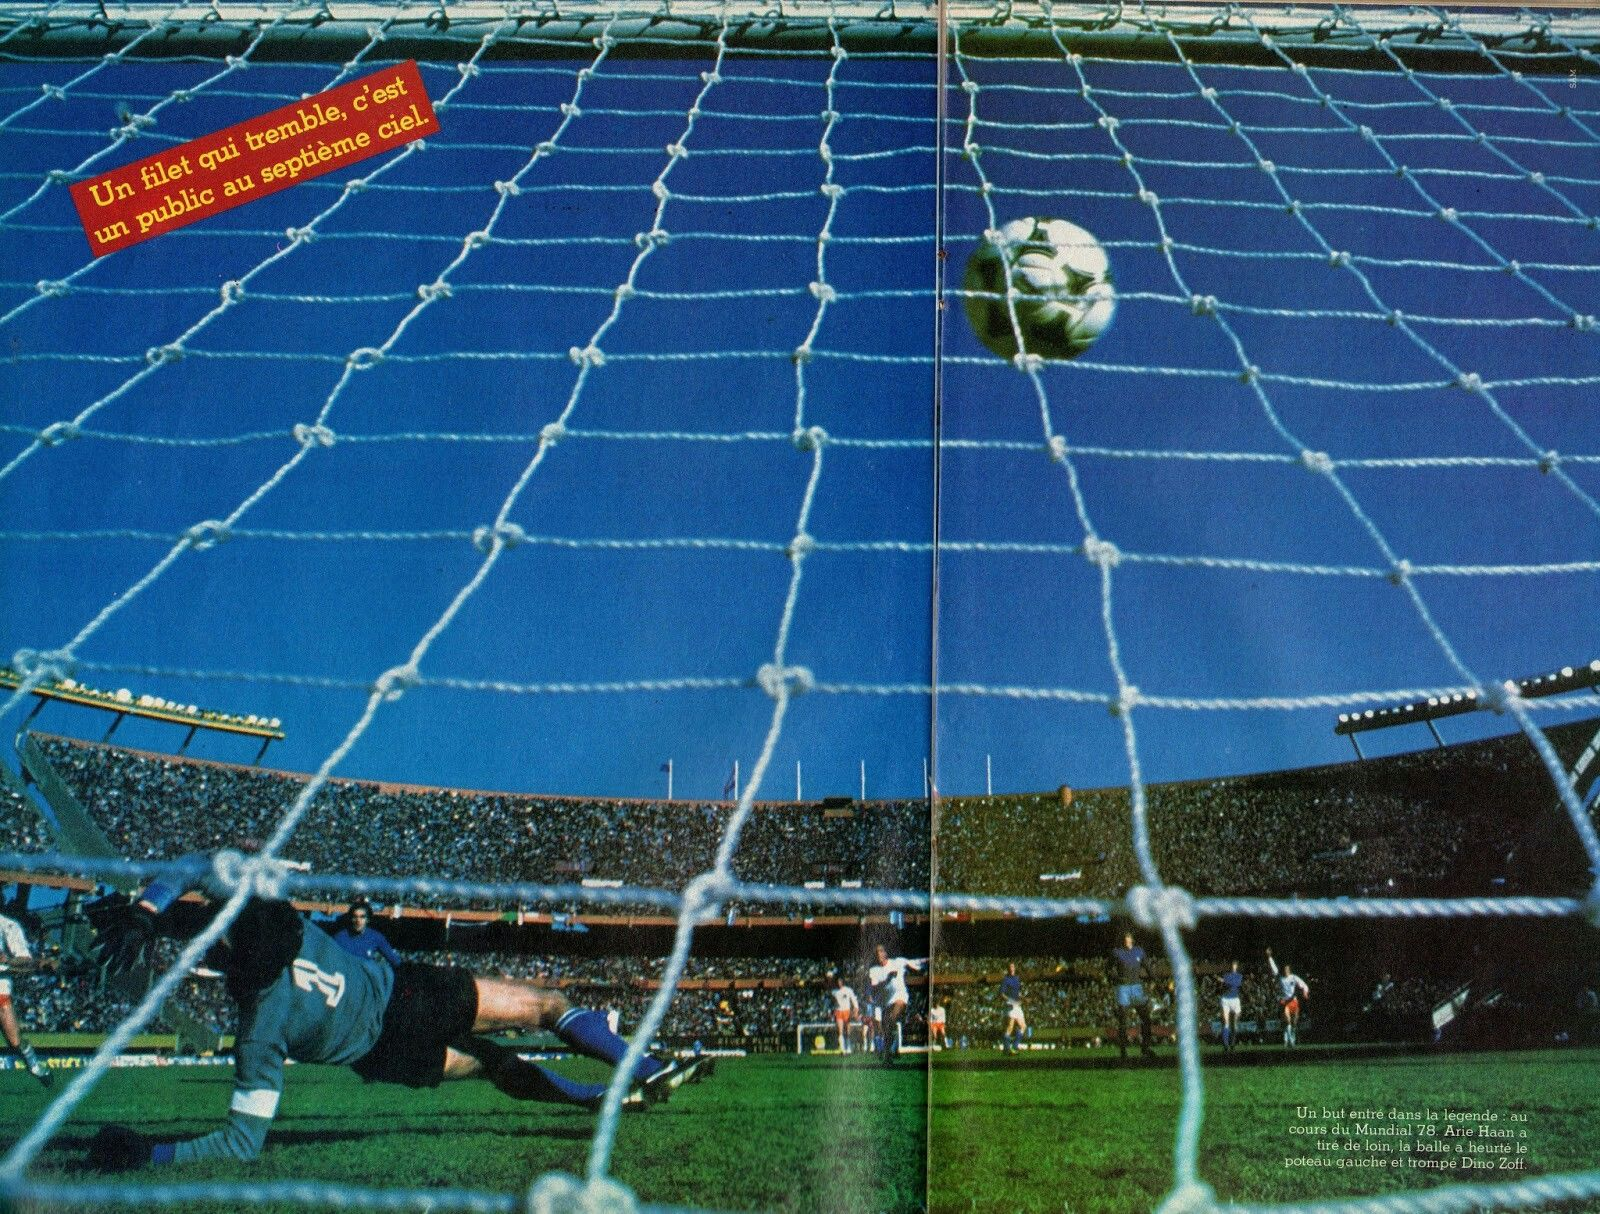 Italy 1 Holland 2 in 1978 in Buenos Aires Arie Haan scored the